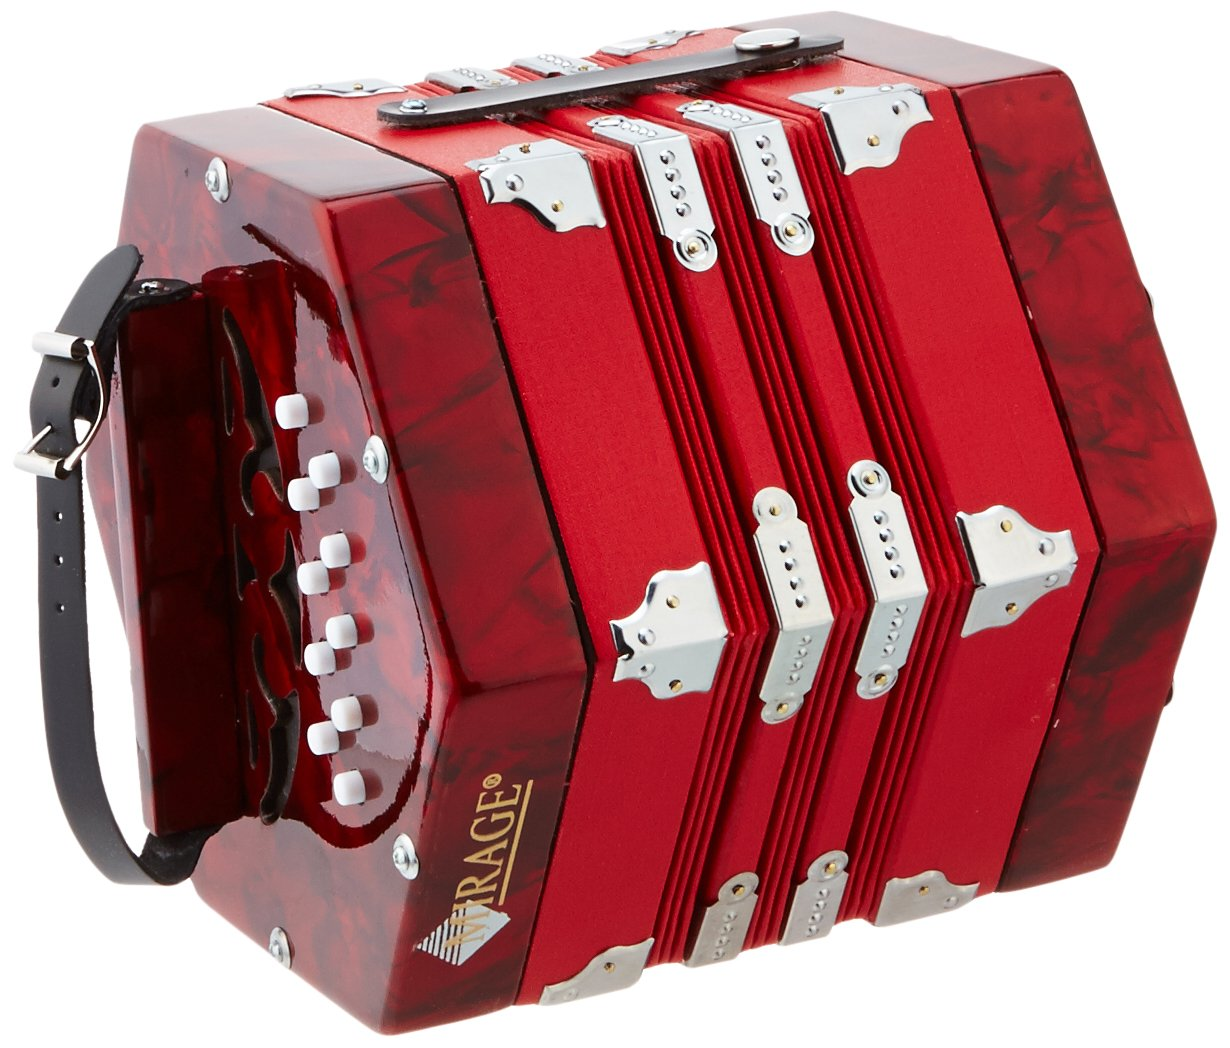 Mirage C7001 20-Button 40-Reed Concertina Accordion M & M Merchandisers Inc